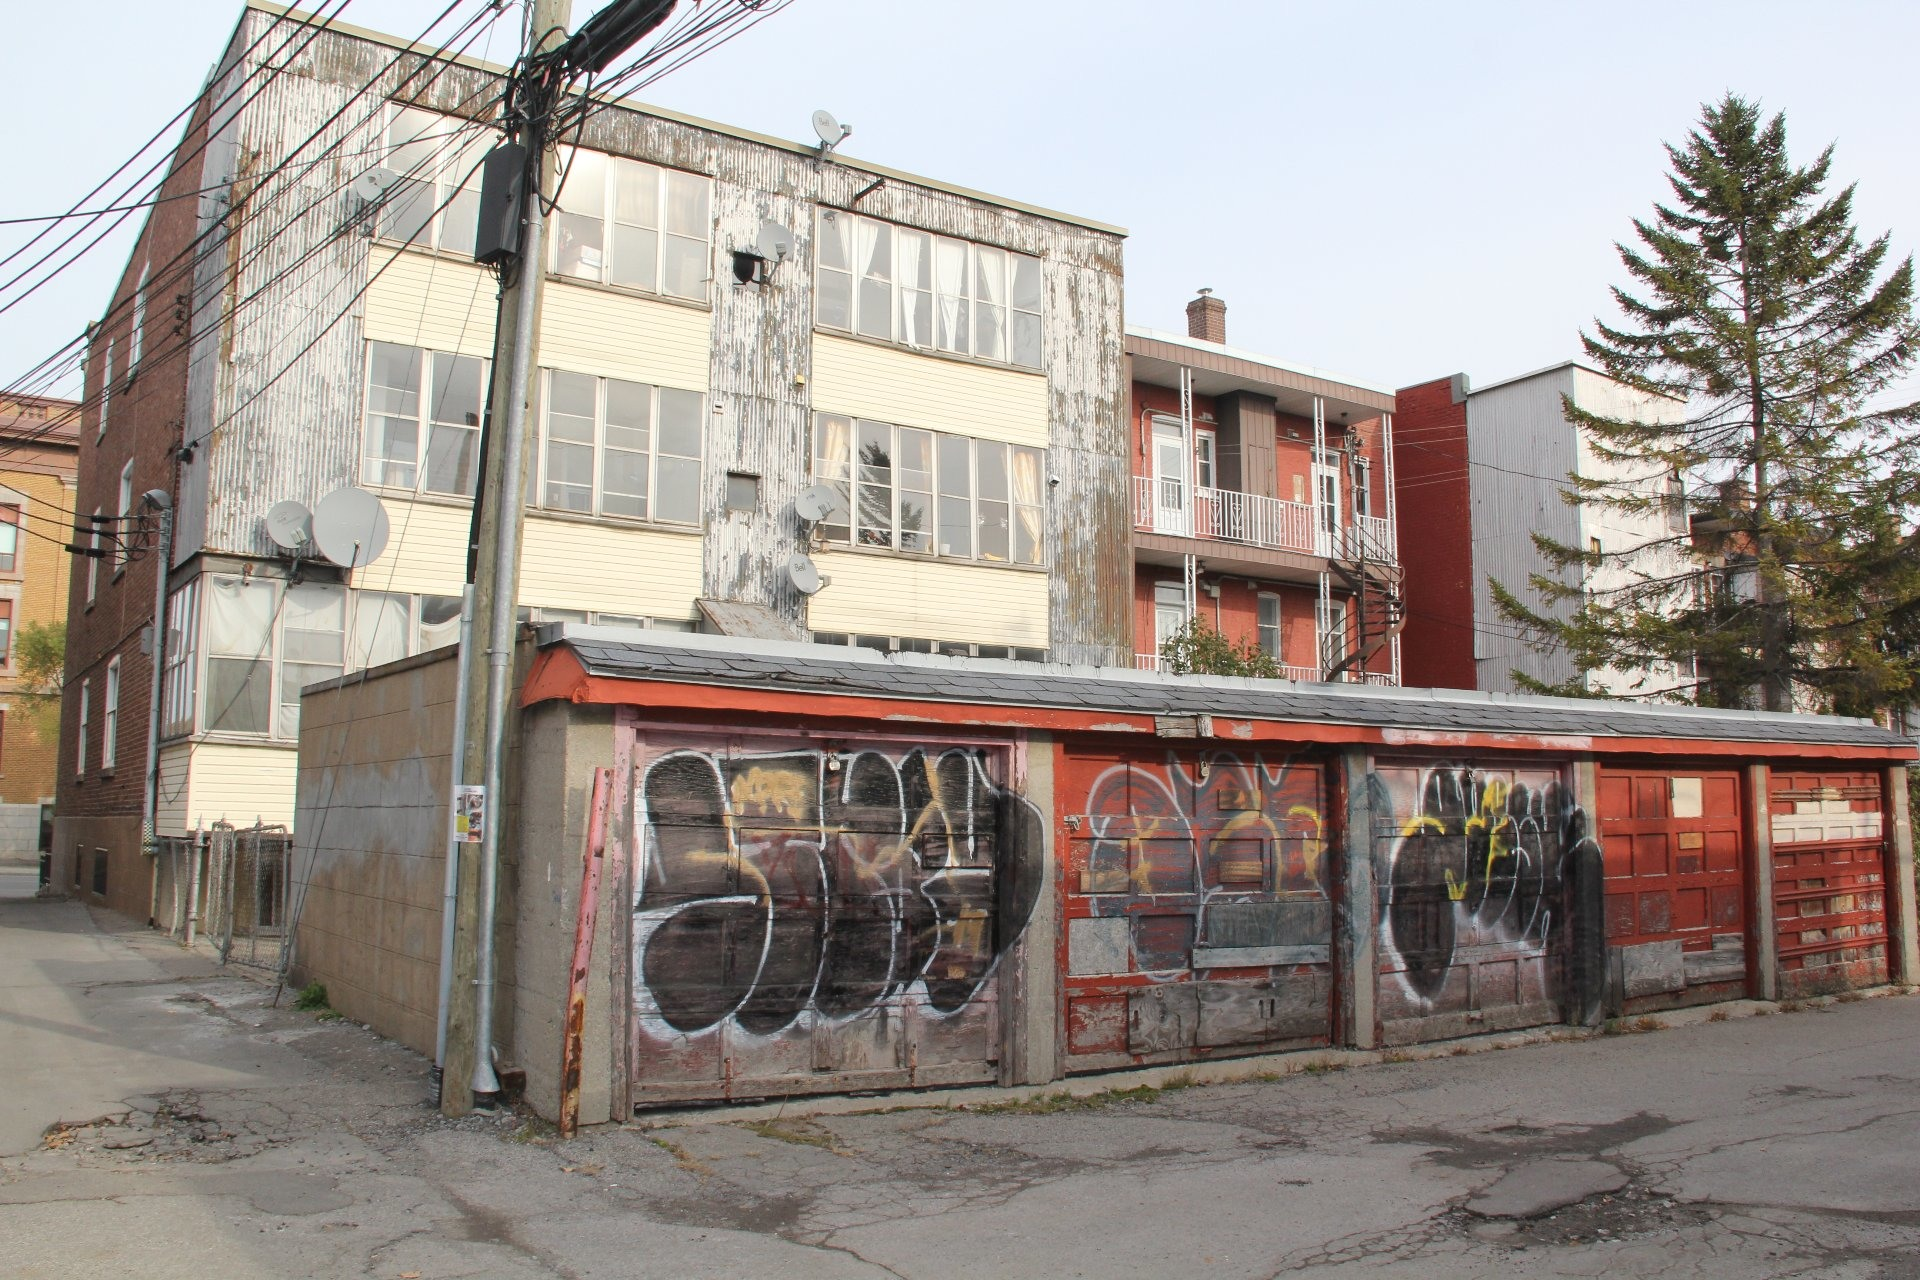 image 4 - Income property For sale Mercier/Hochelaga-Maisonneuve Montréal